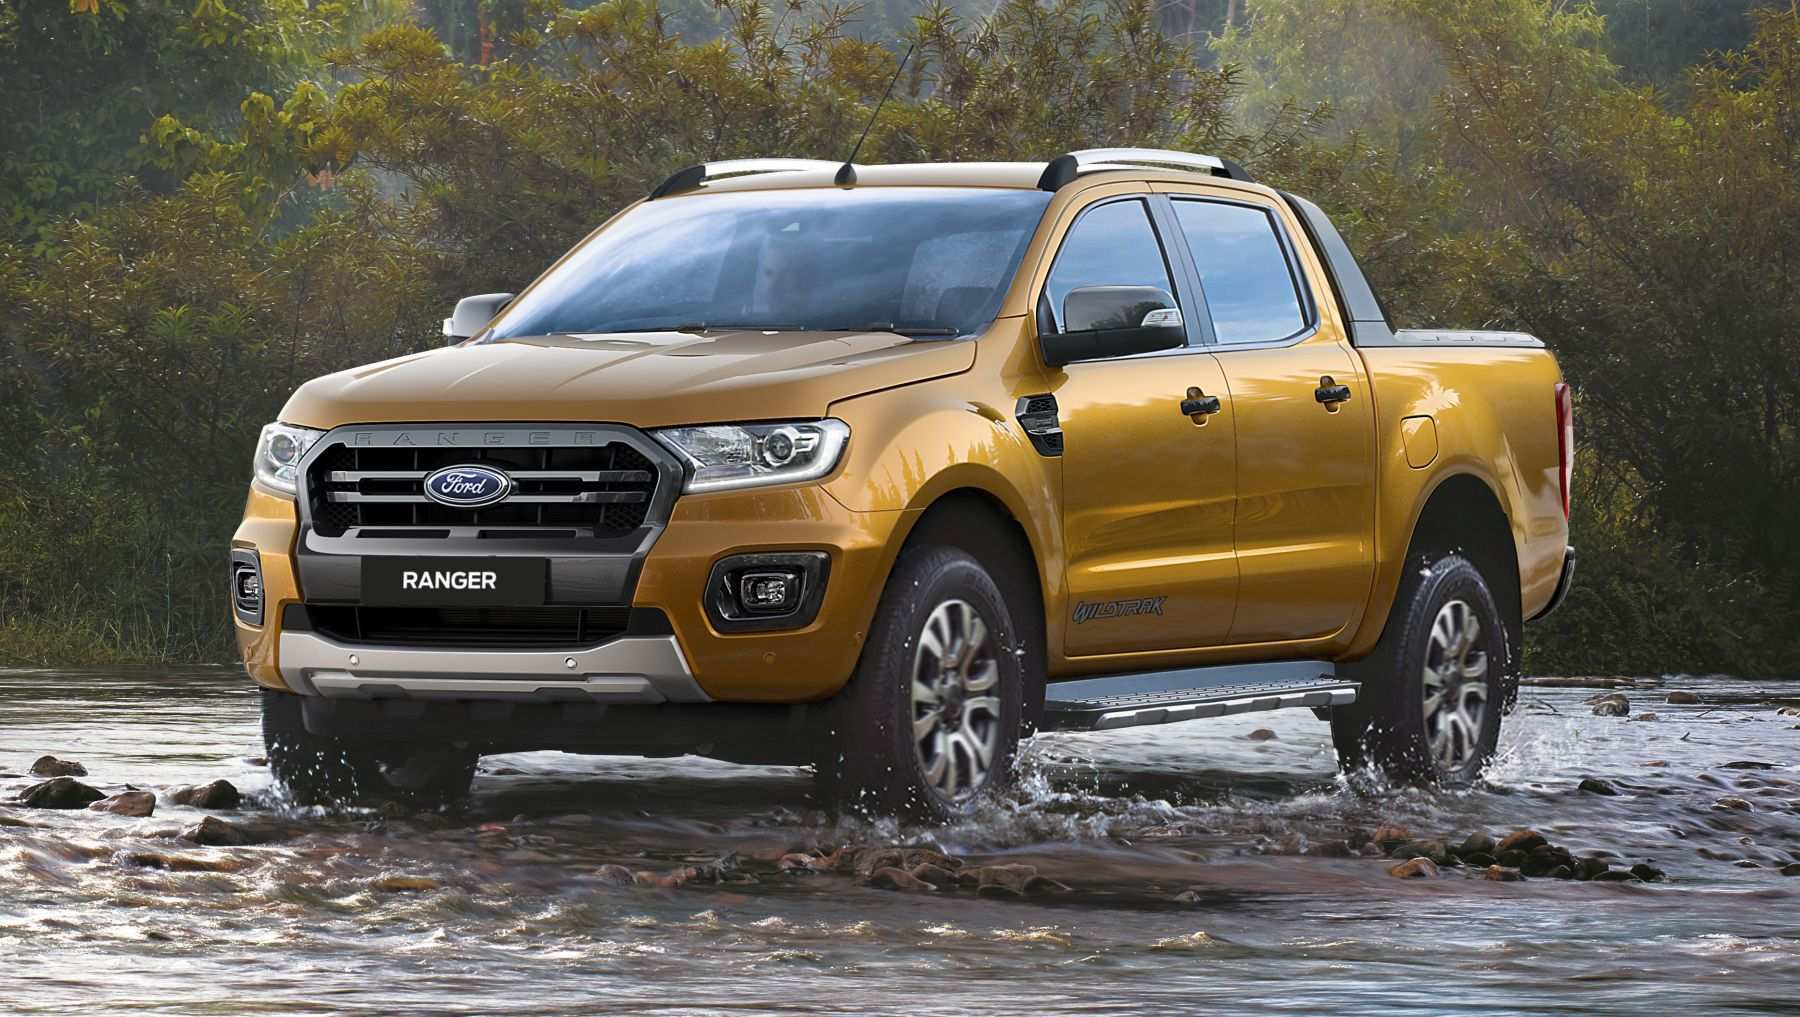 55 New 2020 Ford Ranger Wildtrak Picture for 2020 Ford Ranger Wildtrak